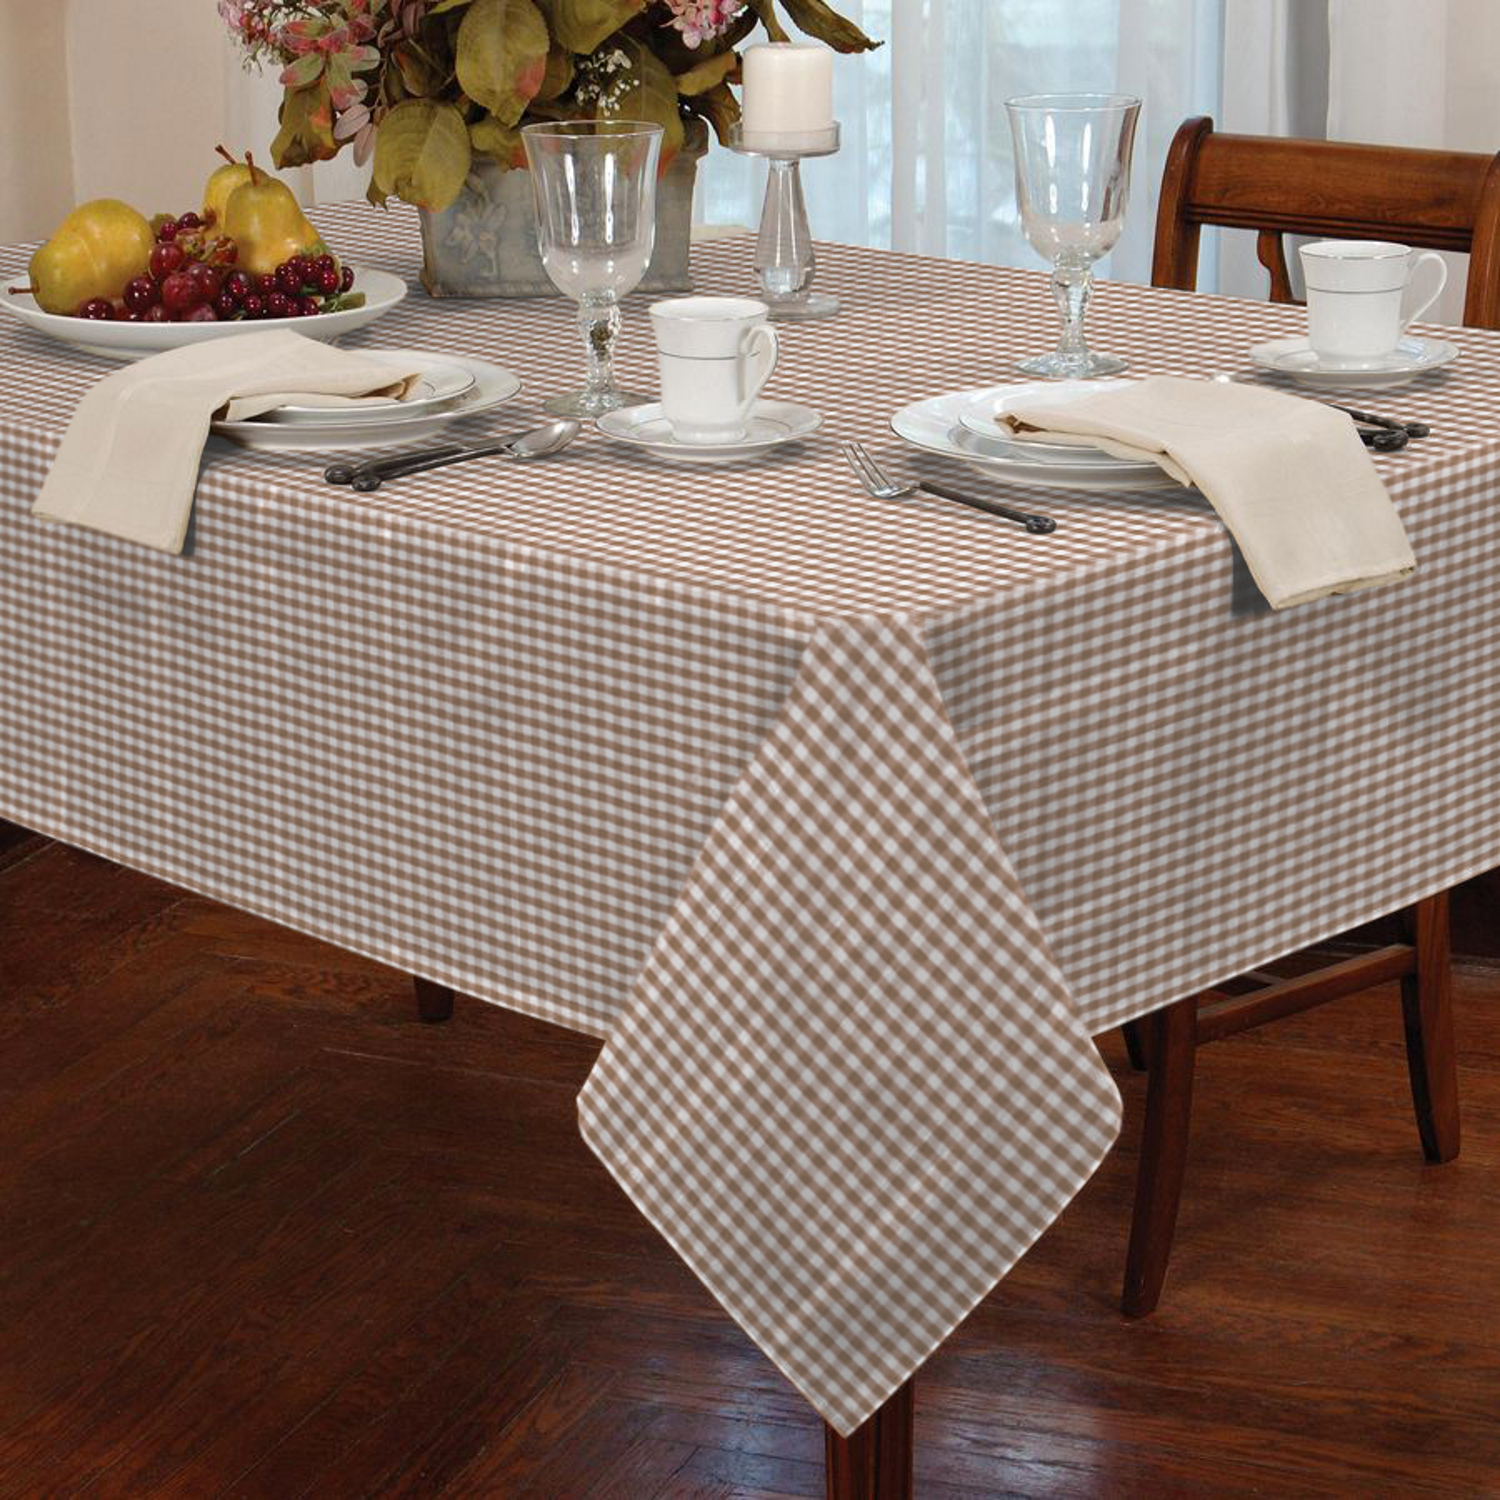 gingham dining room chair covers round ottoman garden picnic check tablecloth table